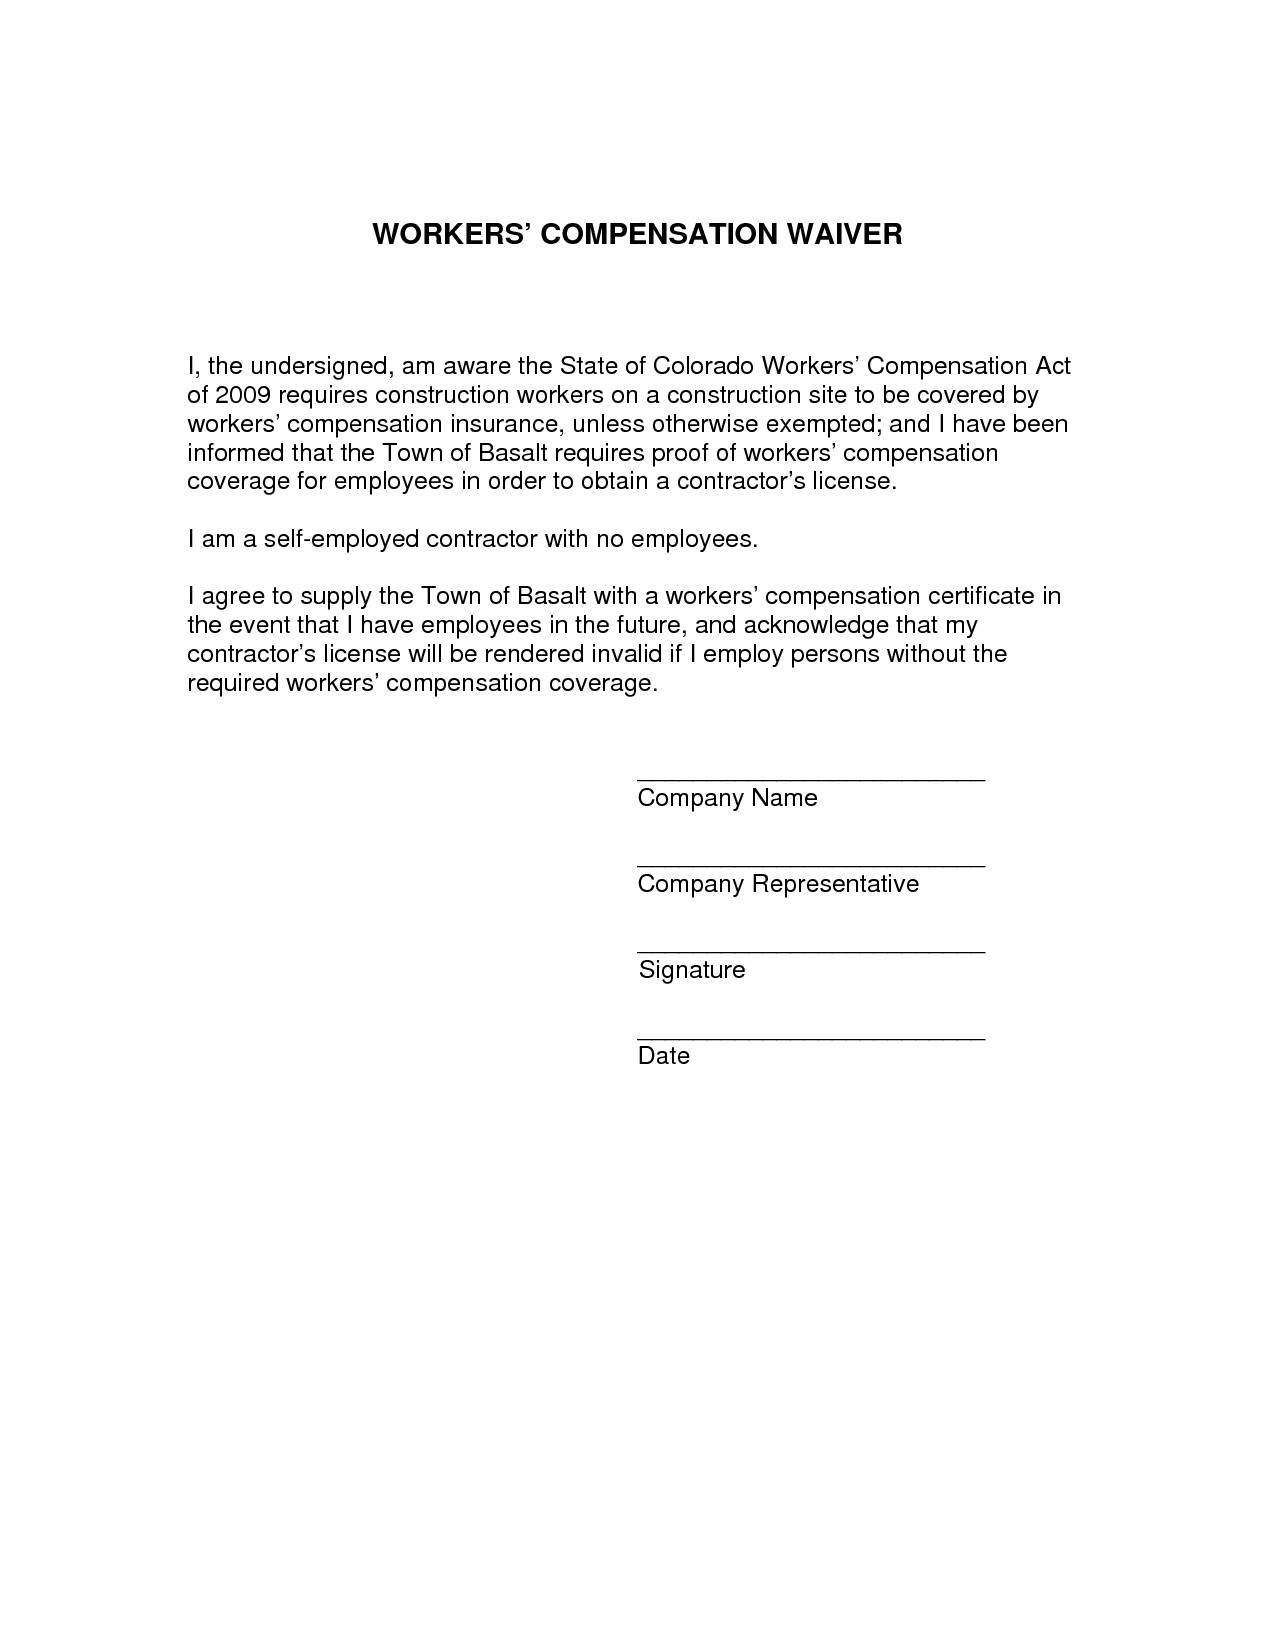 Workers Compensation Waiver form Texas Best S Of Arizona Workers Pensation Waiver form